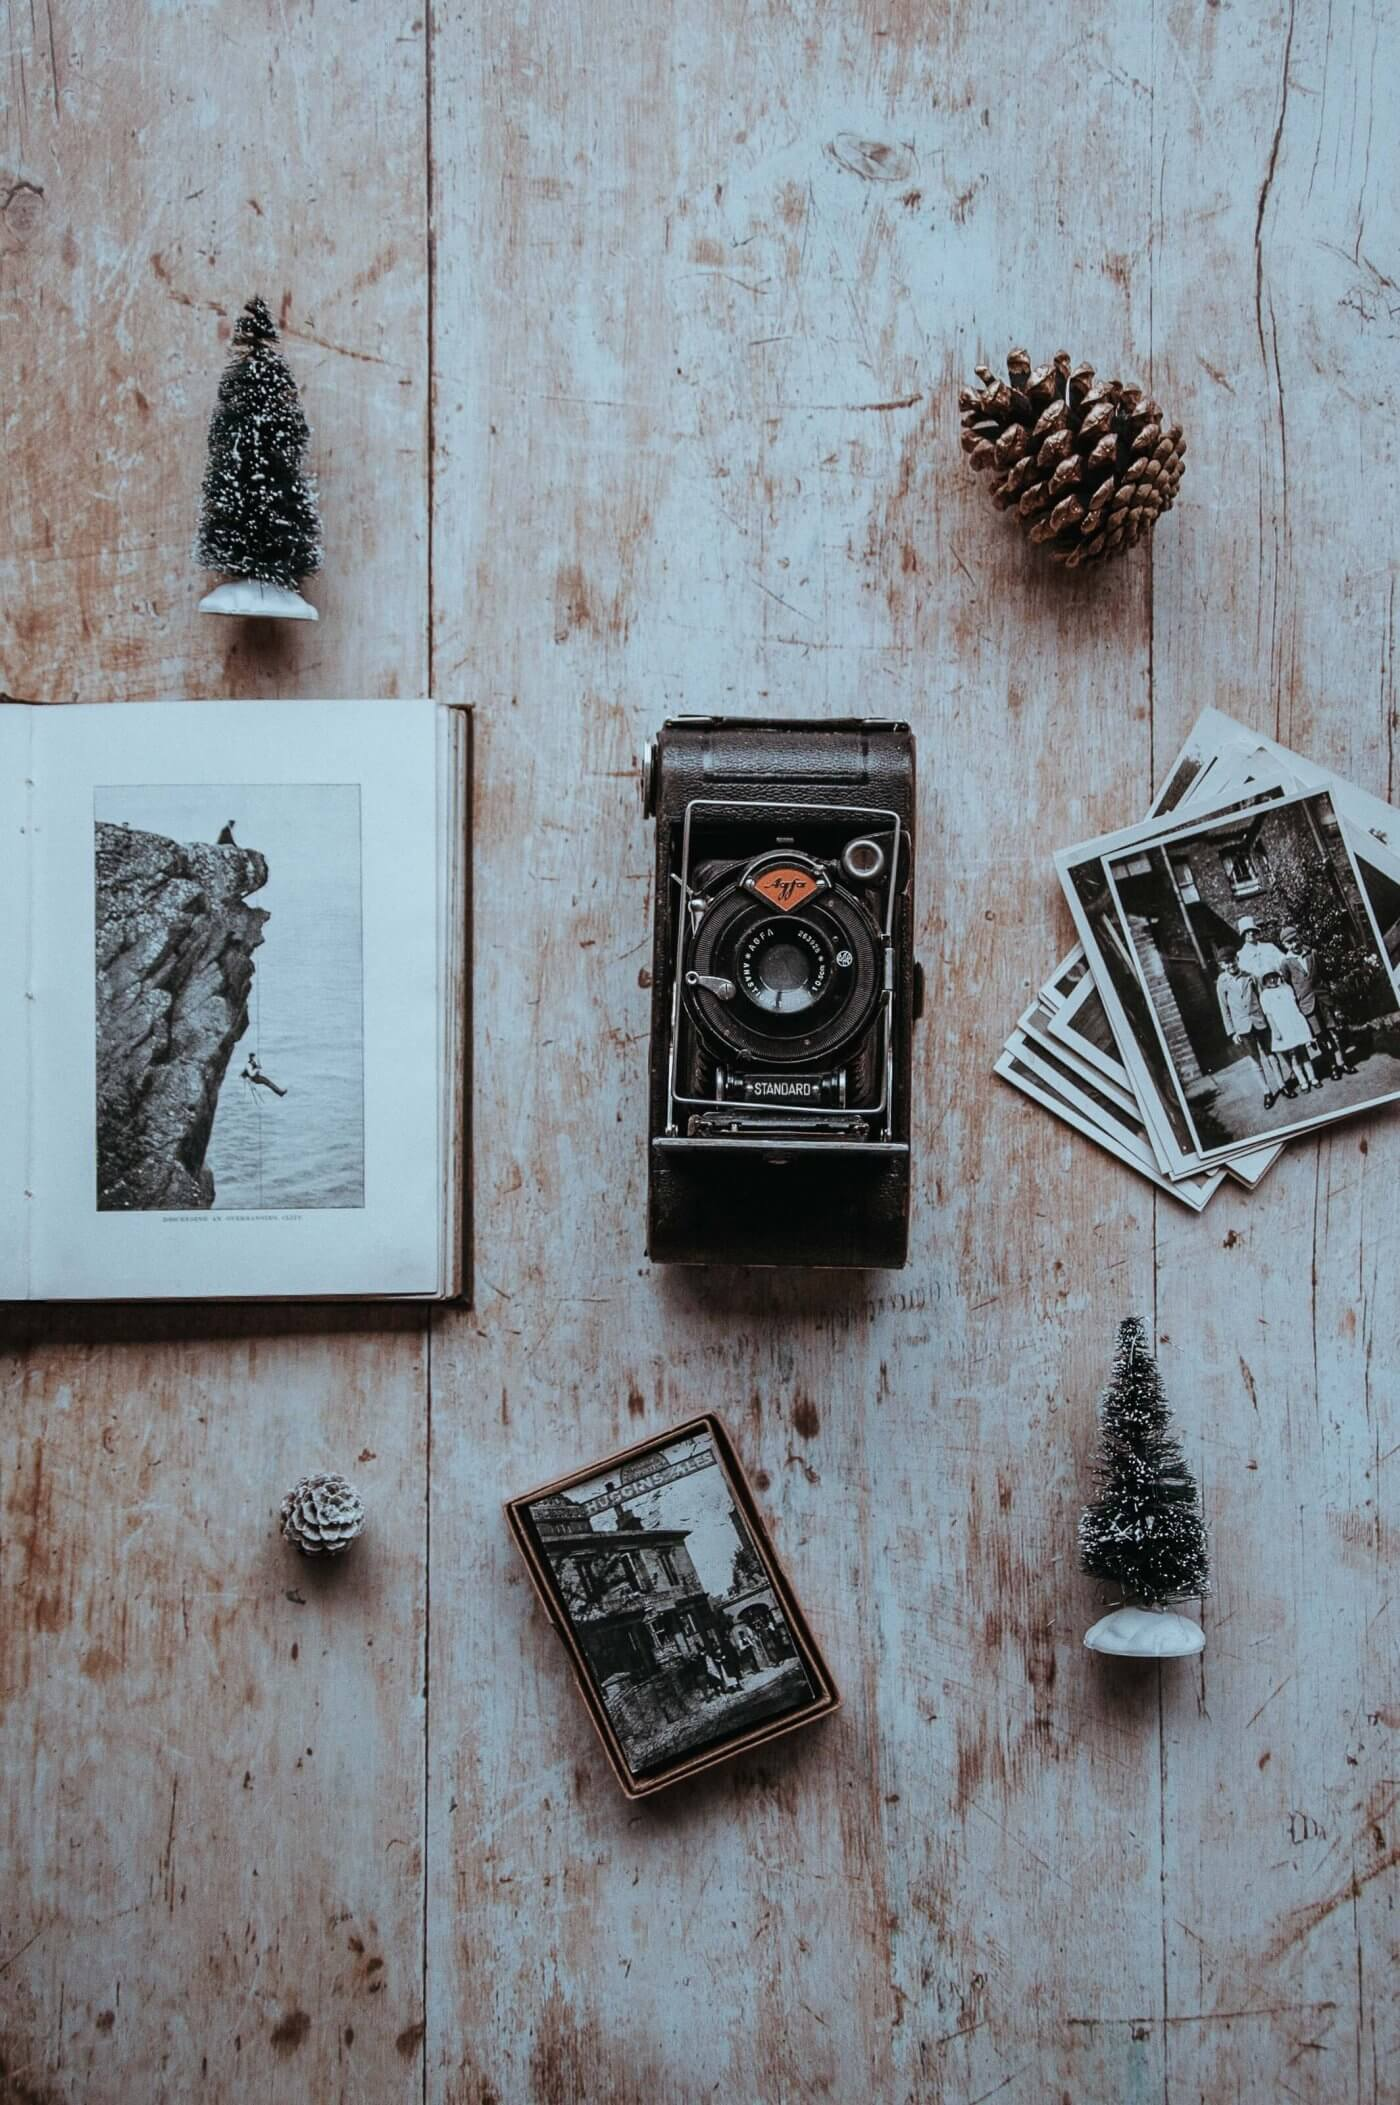 Retro Camera with Pictures | The Mustcard